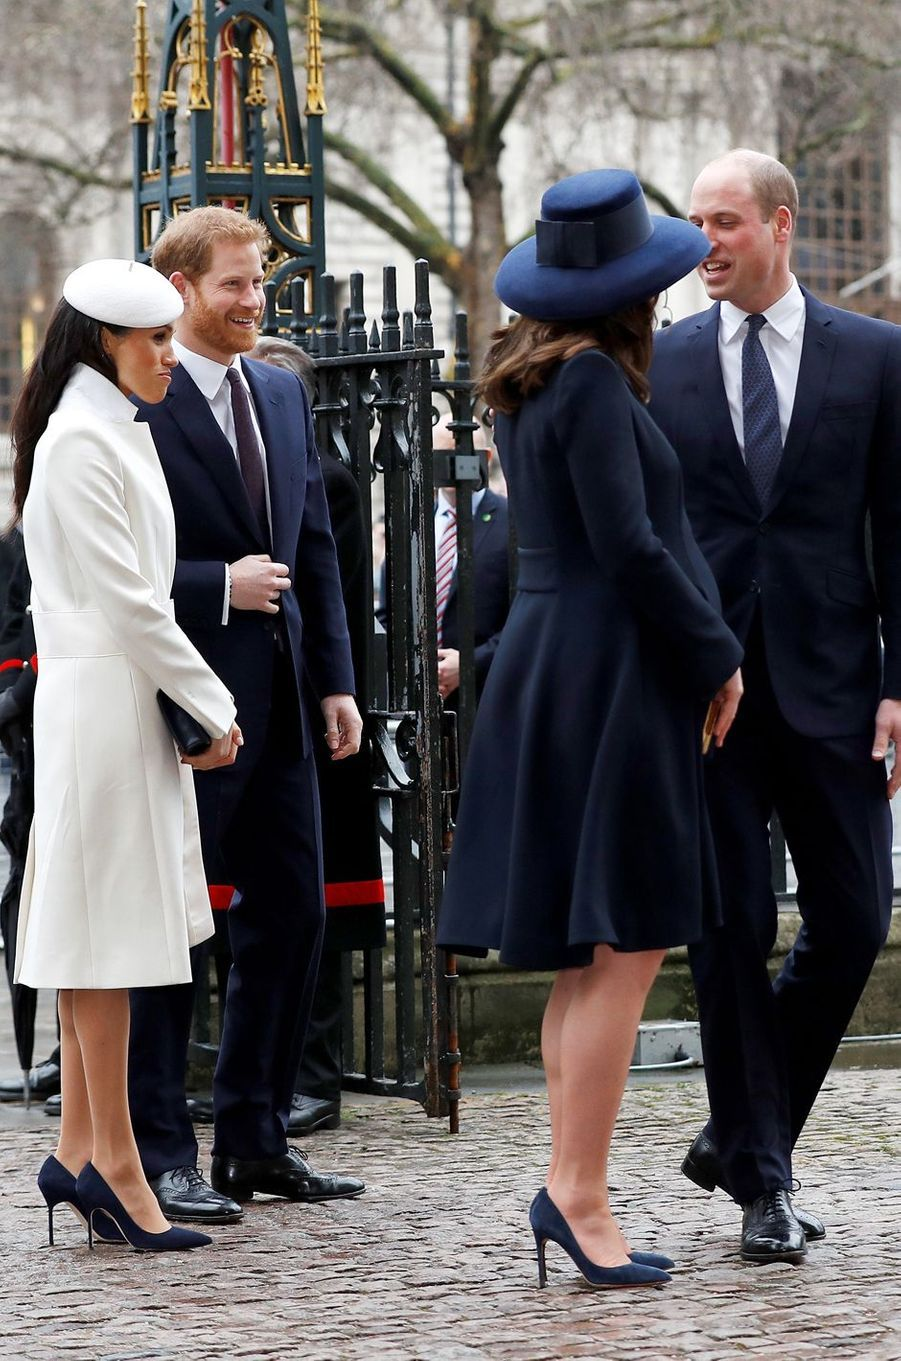 Meghan Markle, le prince Harry, la duchesse Catherine de Cambridge et le prince William à Londres, le 12 mars 2018